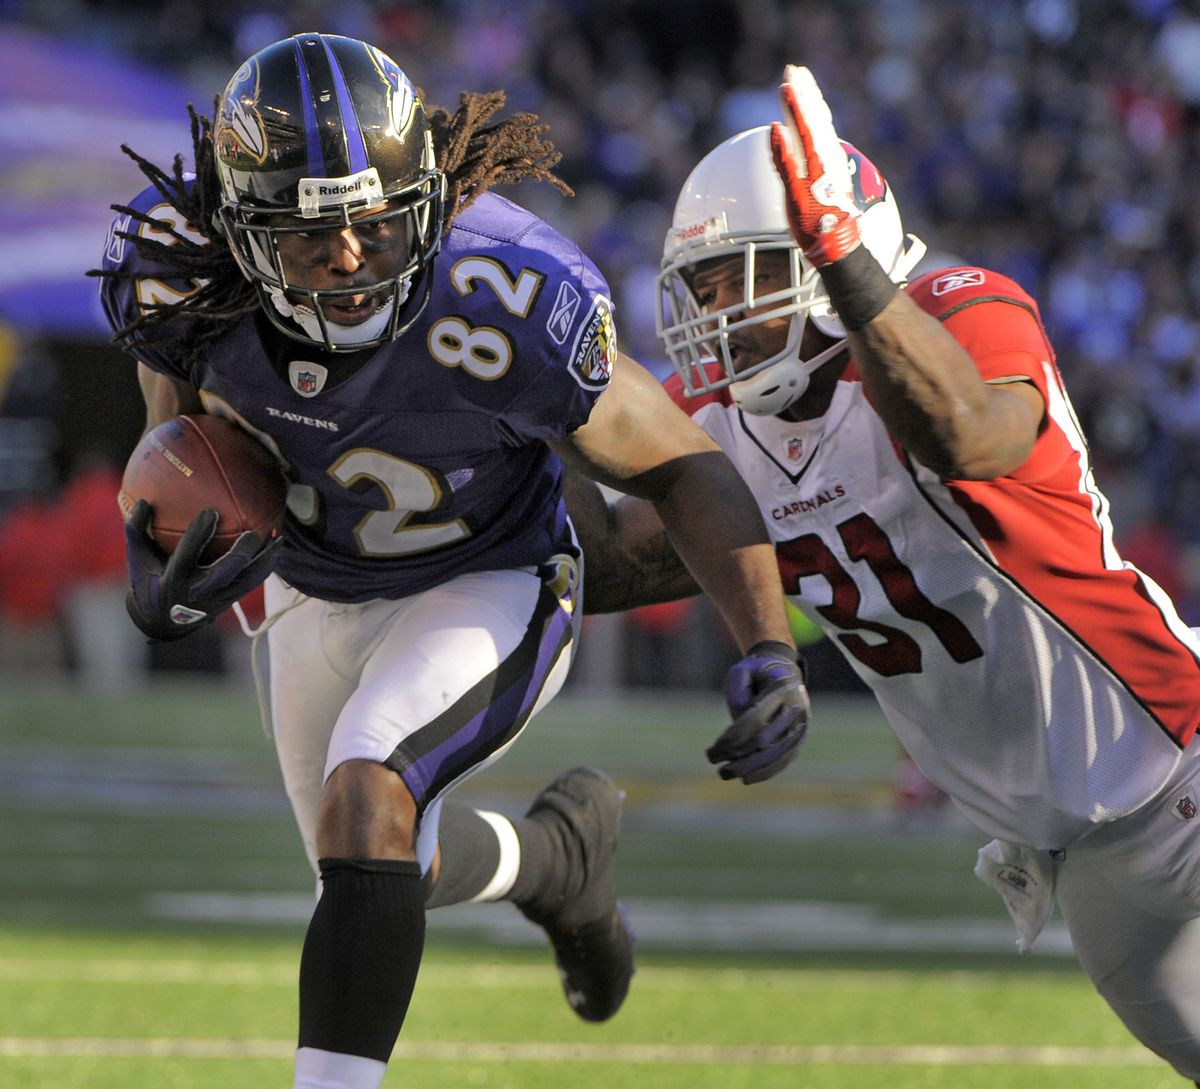 Former Ravens receiver Torrey Smith announces retirement, says he's returning to Baltimore